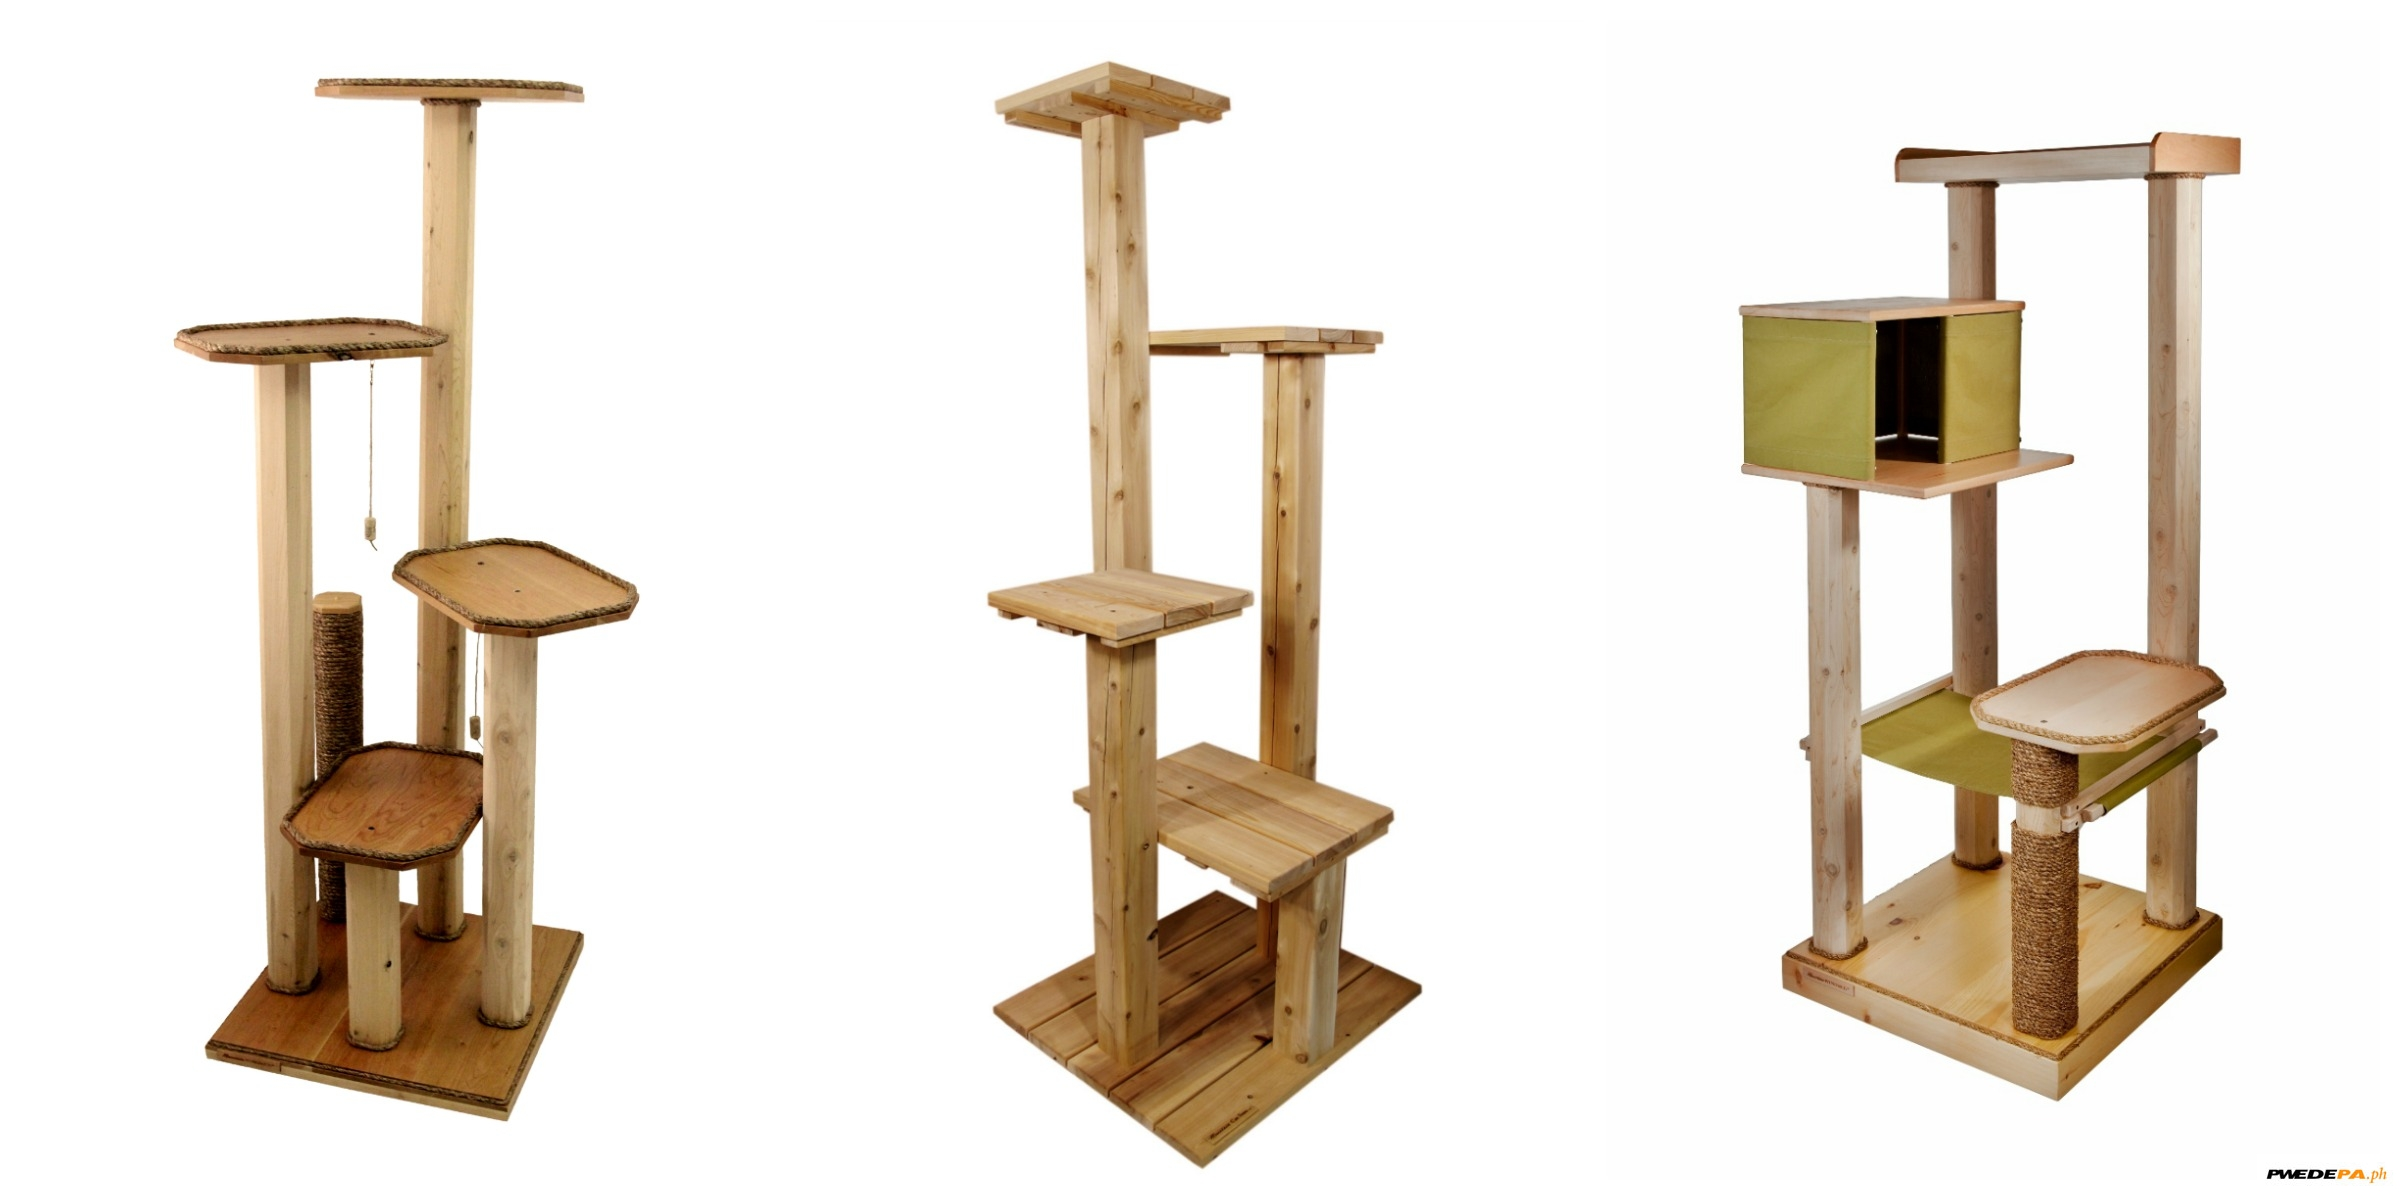 Customize design wood cat tower or cat condo for pets for Wooden cat tree designs